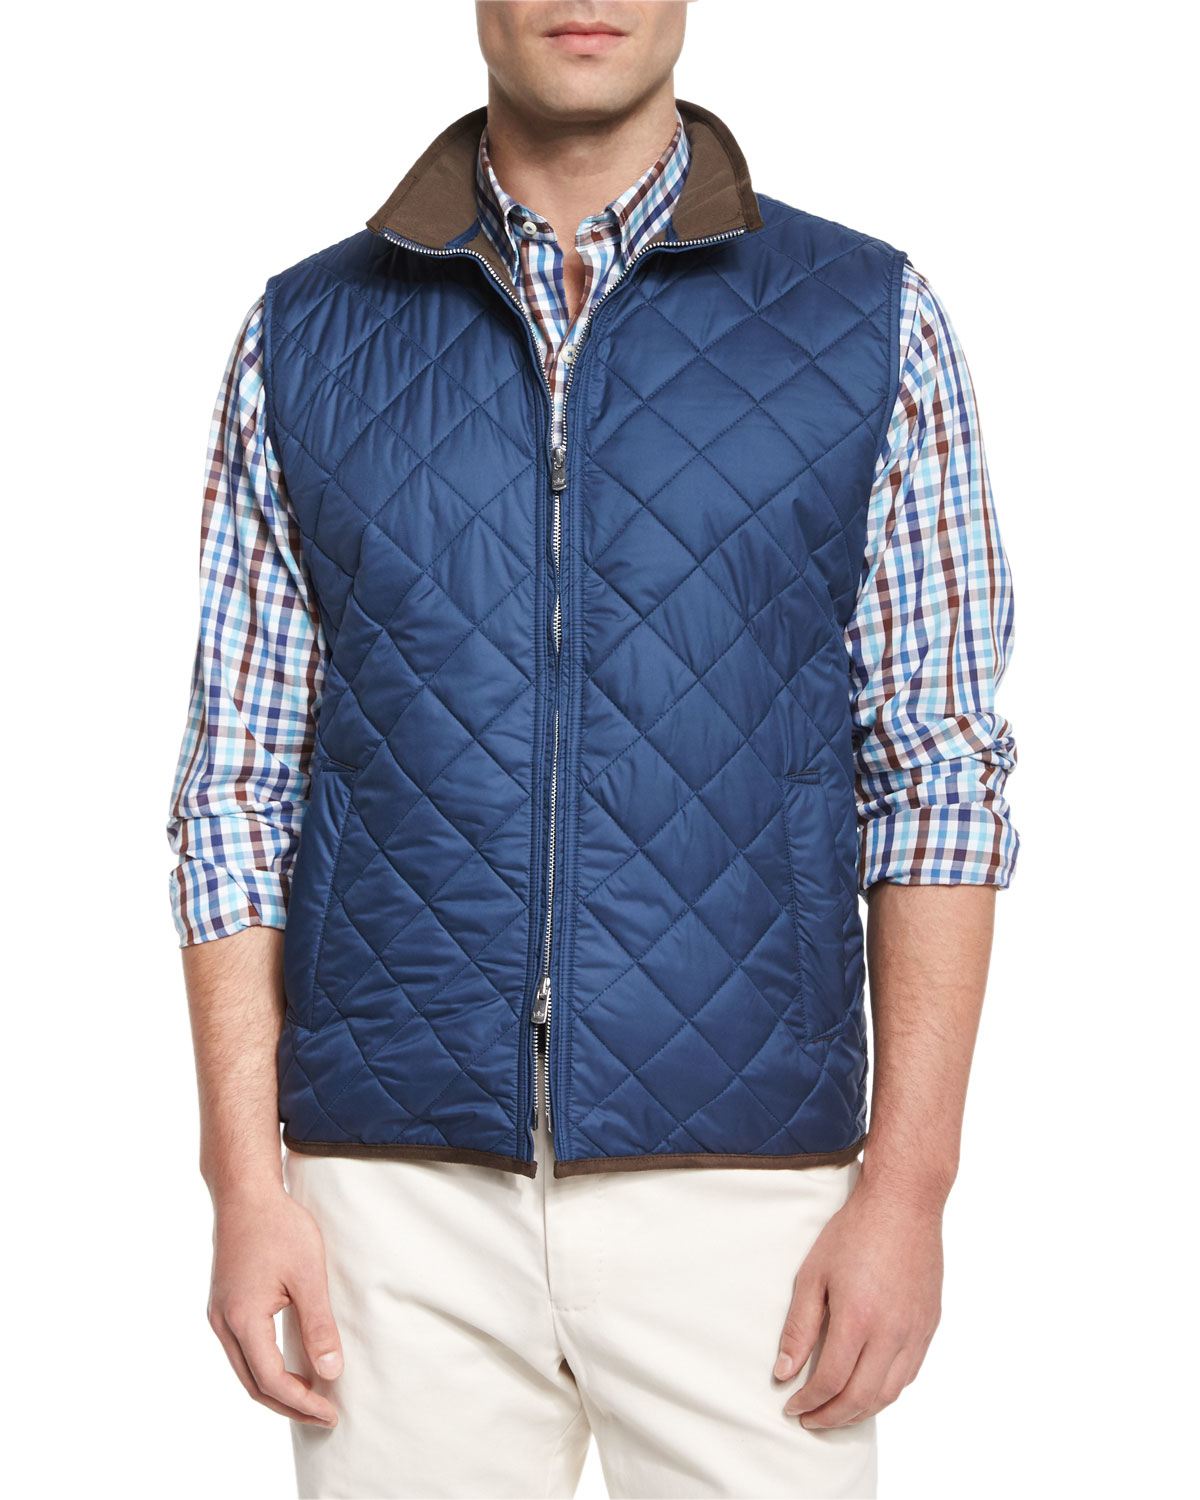 ebfdfaec96 Lyst - Peter Millar Potomac Quilted Vest in Blue for Men